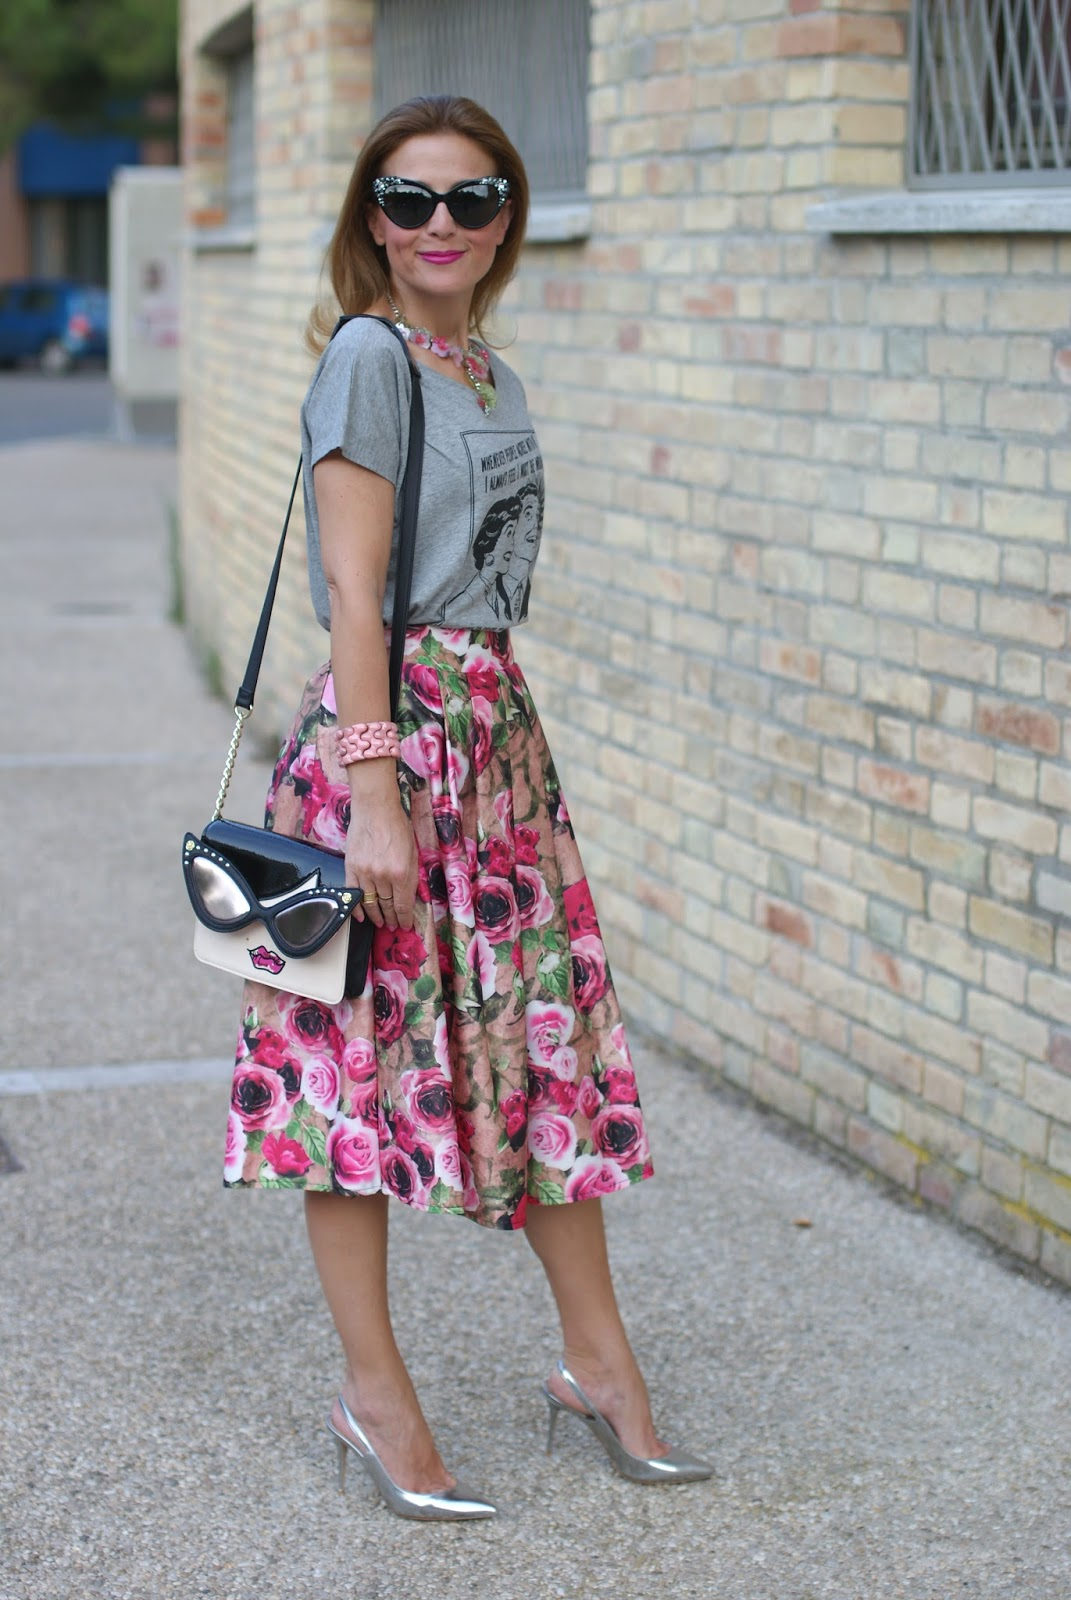 Opposes Complementaires t-shirt con midi skirt con rose e borsa Betsey Johnson su Fashion and Cookies fashion blog, fashion blogger style